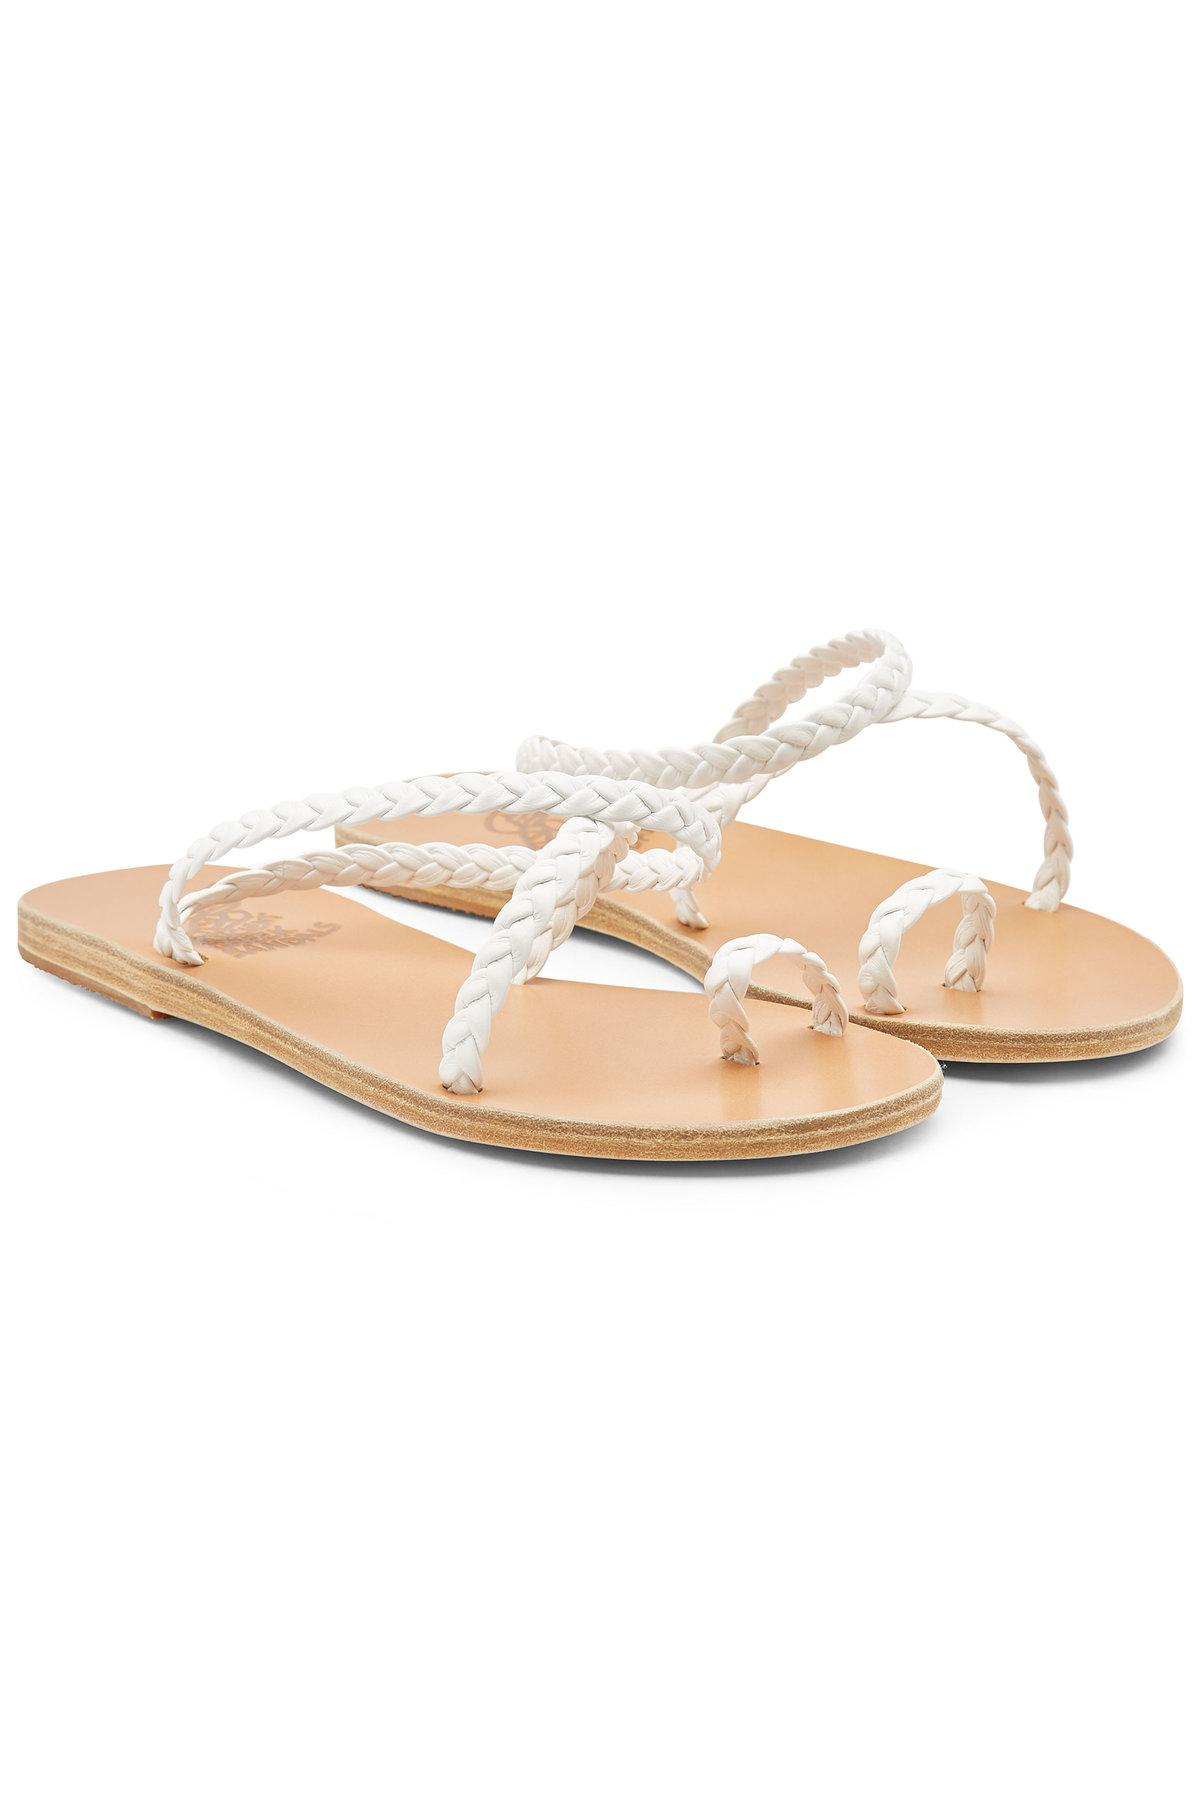 9bdbb84cf Lyst - Ancient Greek Sandals Eleftheria Leather Sandals in White